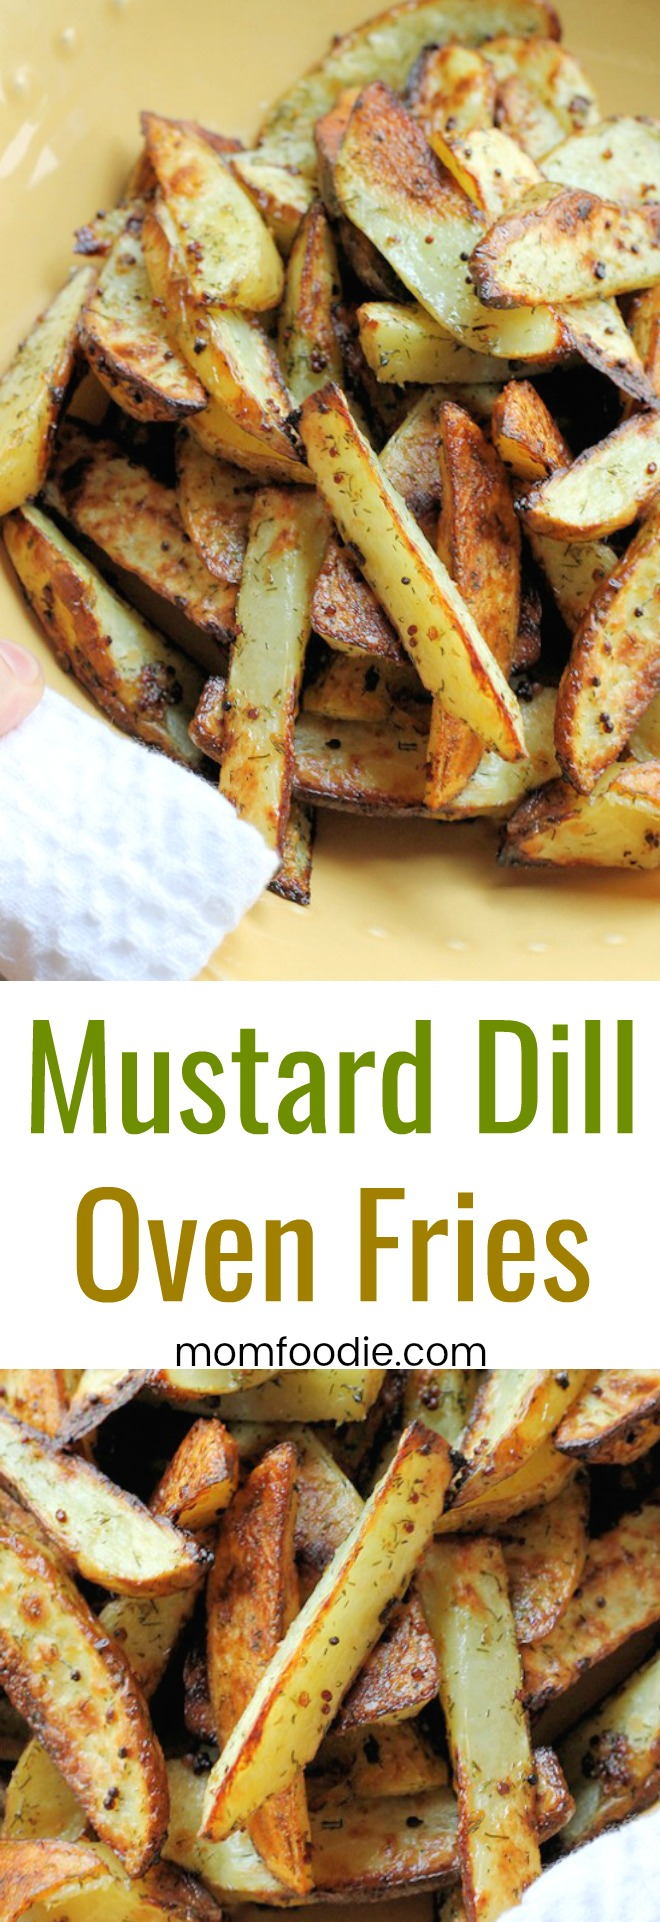 Mustard Dill Oven Fries - easy flavorful oven fries recipe.